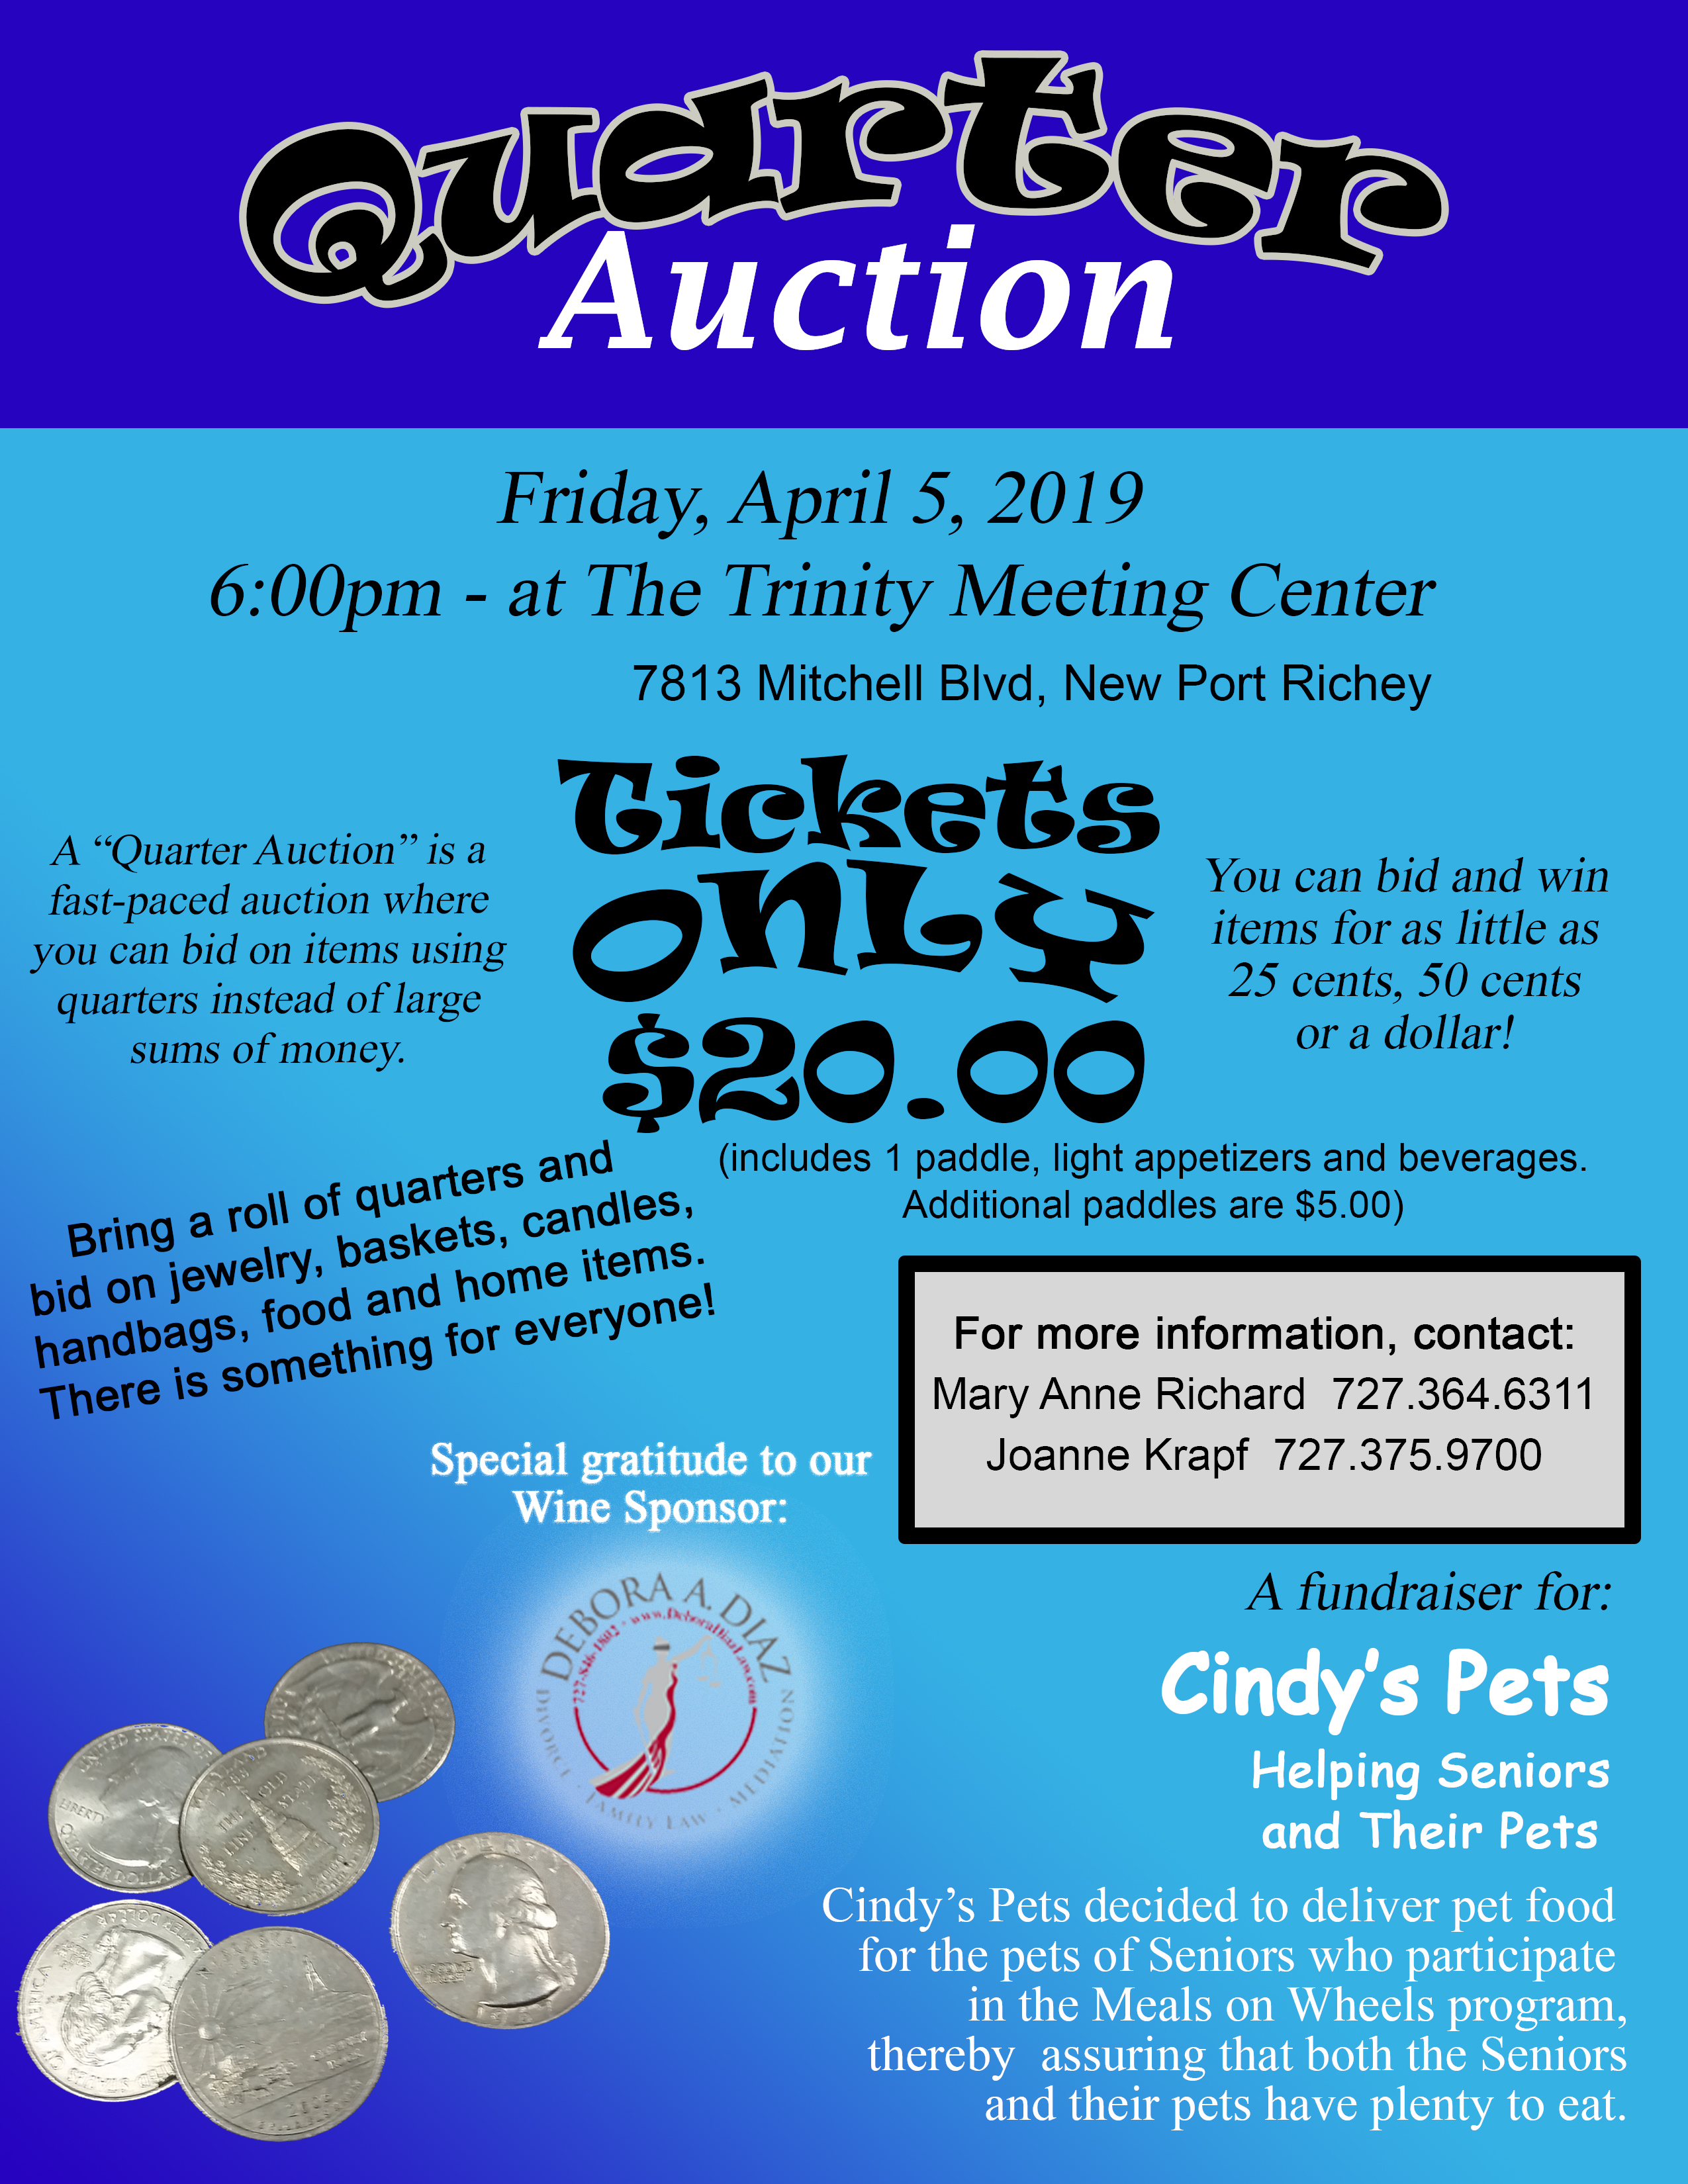 Quarter Auction Flier - Cindy's Pets